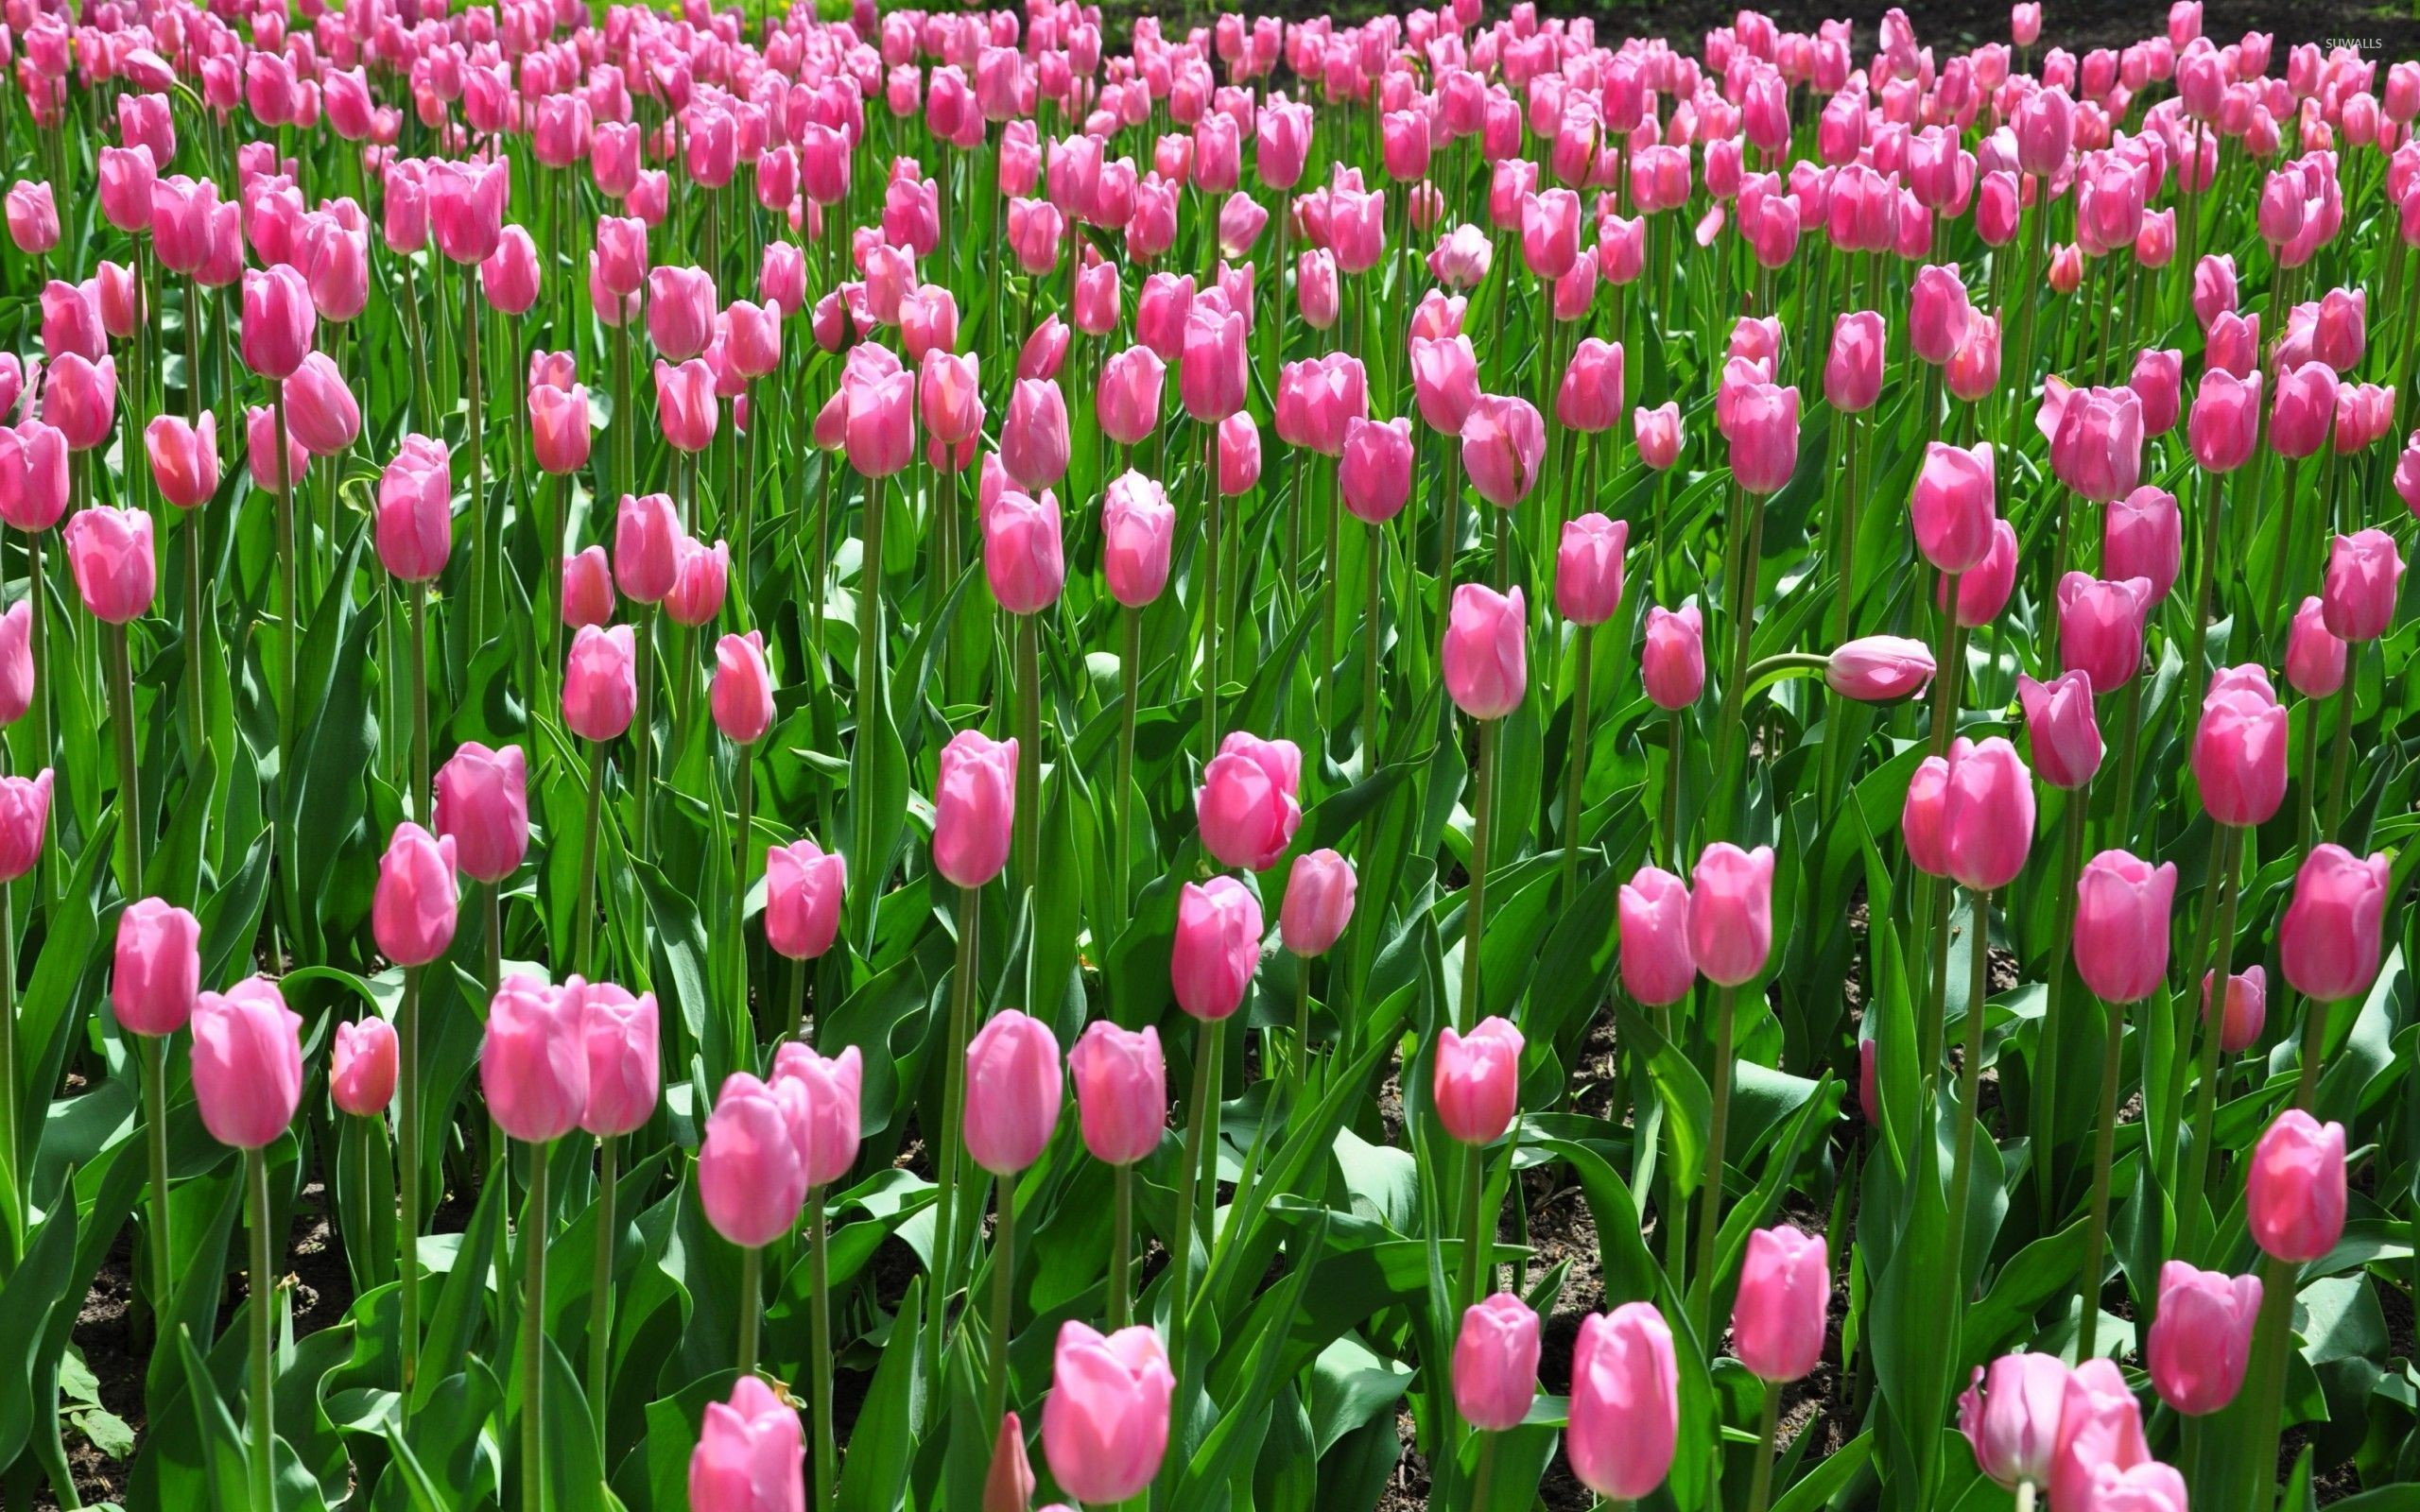 Res: 2560x1600, Pink tulips on the field wallpaper